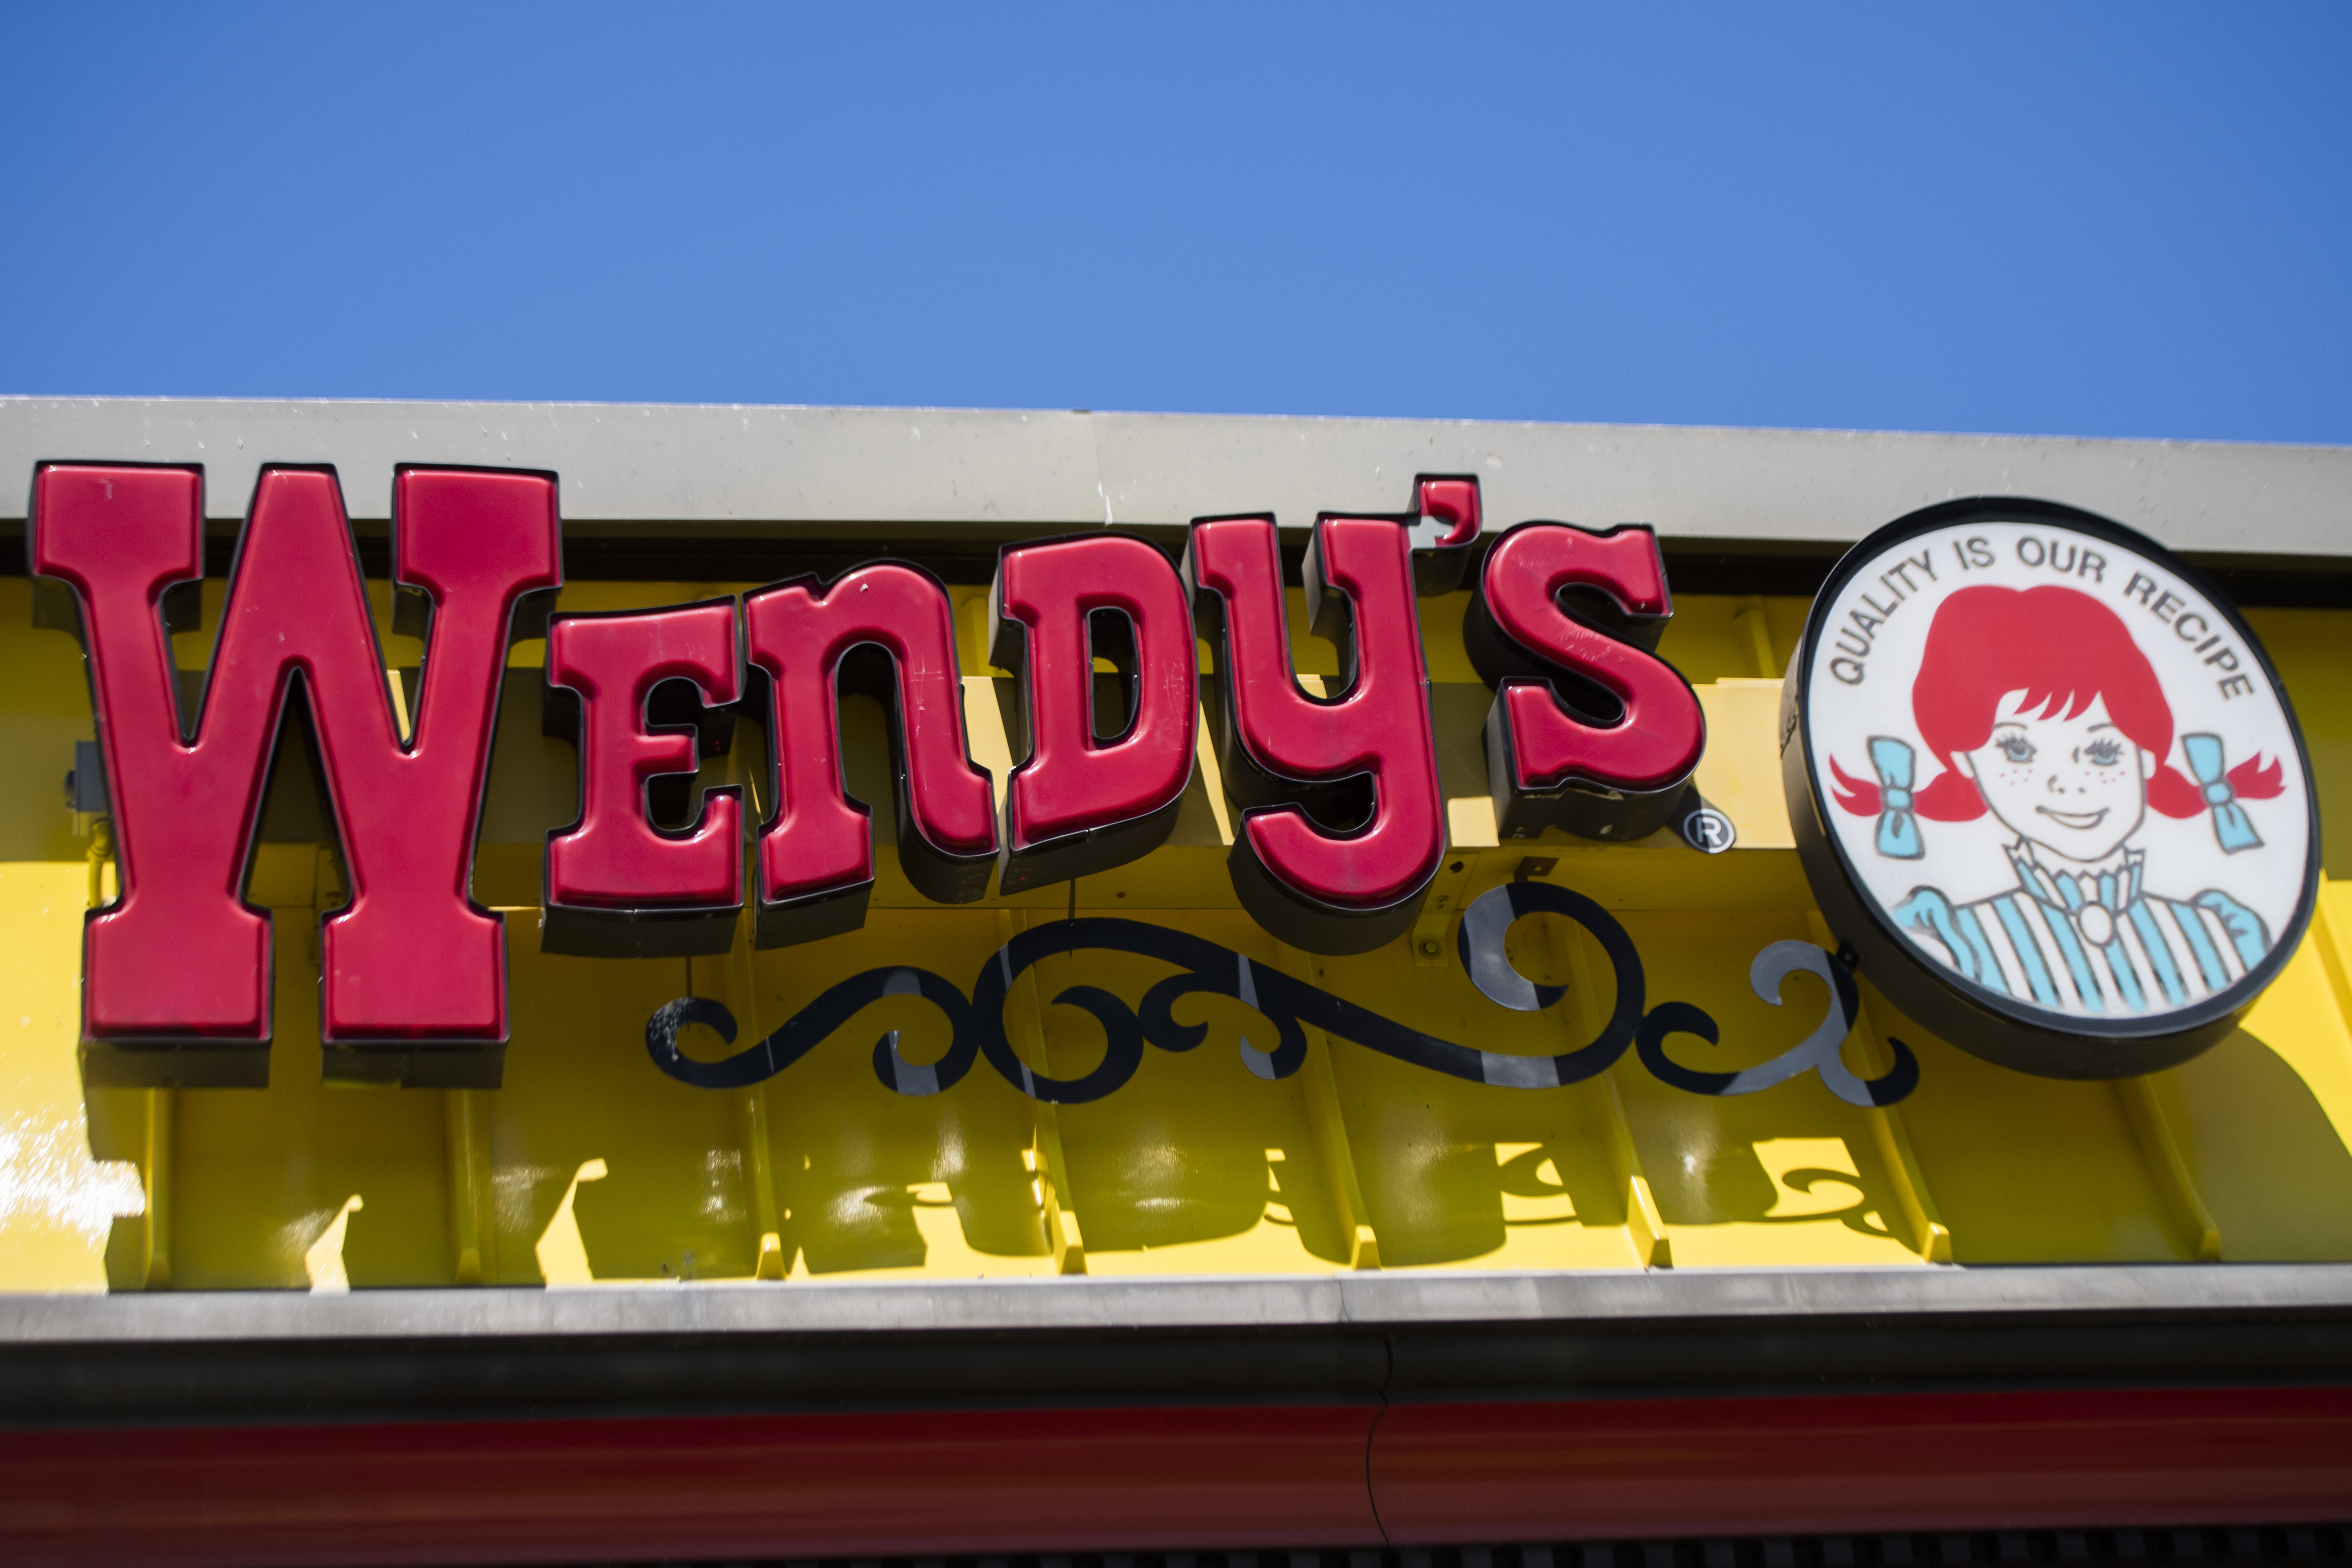 Wendy's, the American fast food chain famous for spicy nuggets and Twitter trolling